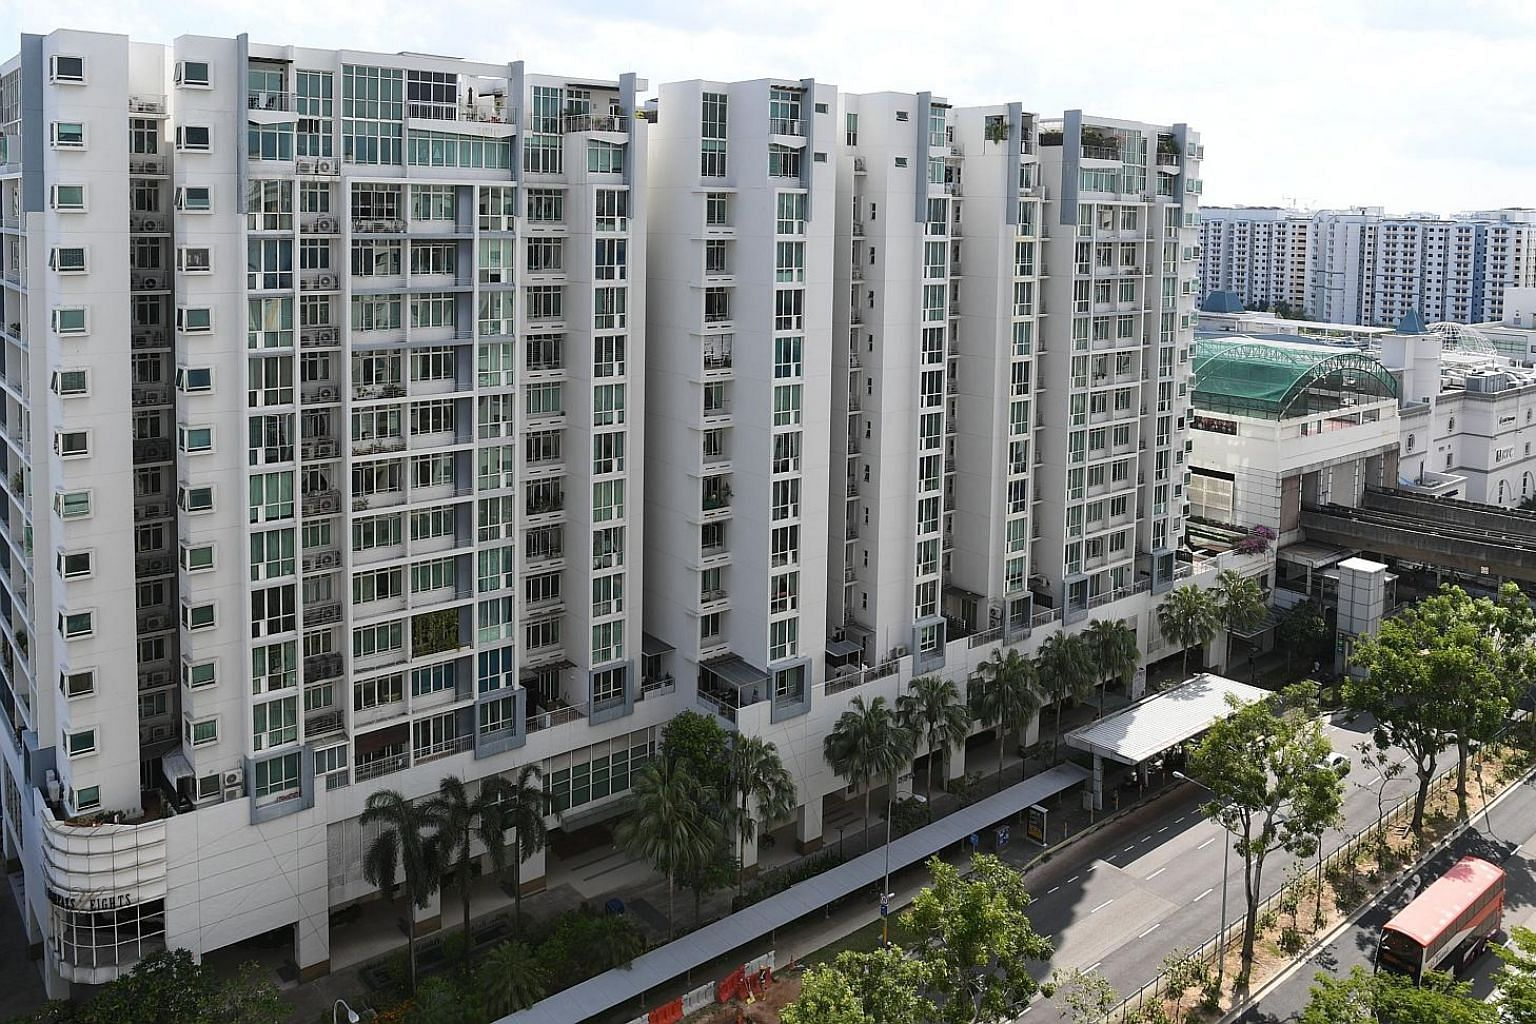 The new Sengkang GRC, which has 117,546 voters, takes in part of the existing Pasir Ris-Punggol GRC, as well as single-seat Punggol East and part of single-seat Sengkang West. Sources say labour chief Ng Chee Meng could be moved from Pasir Ris-Punggo